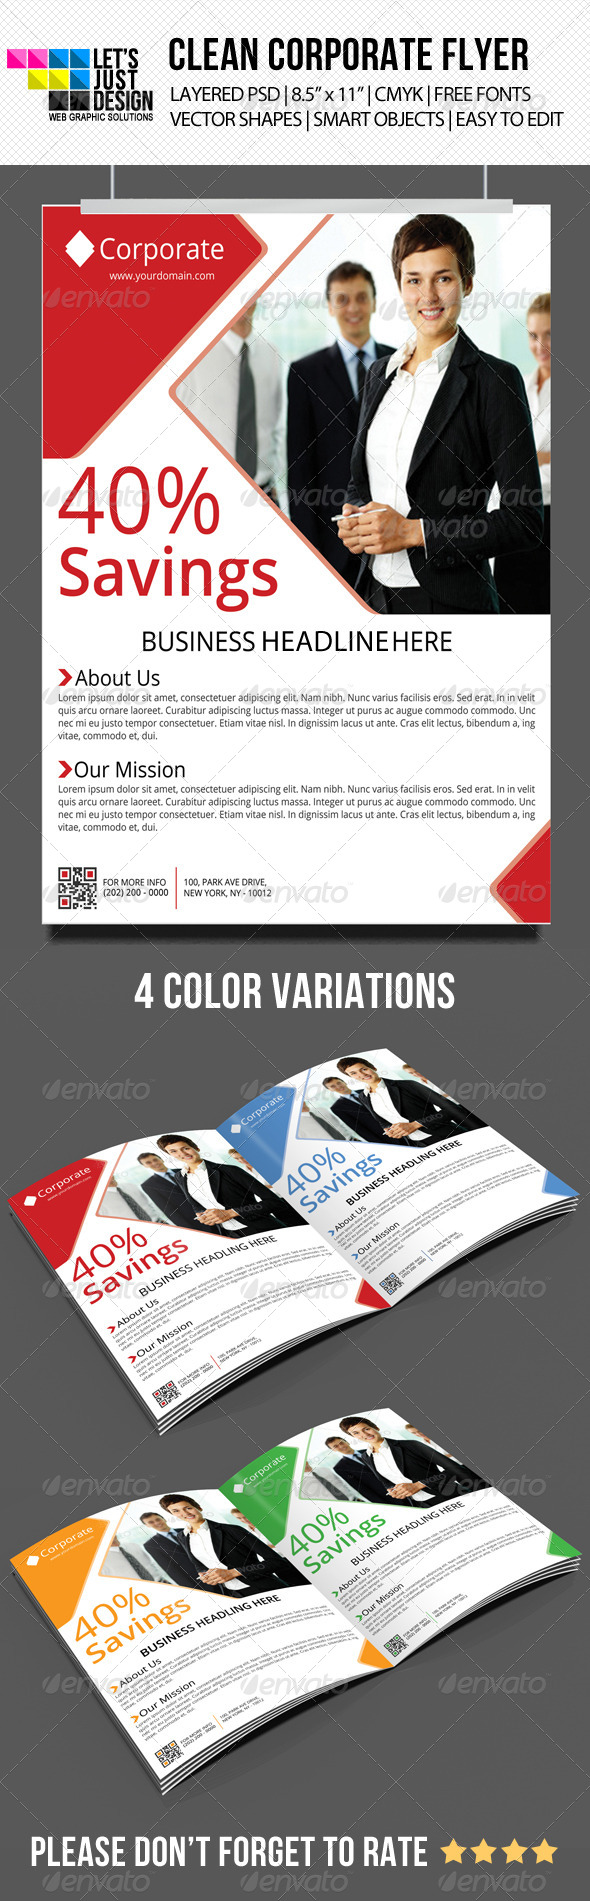 Clean Corporate Flyer - Corporate Flyers